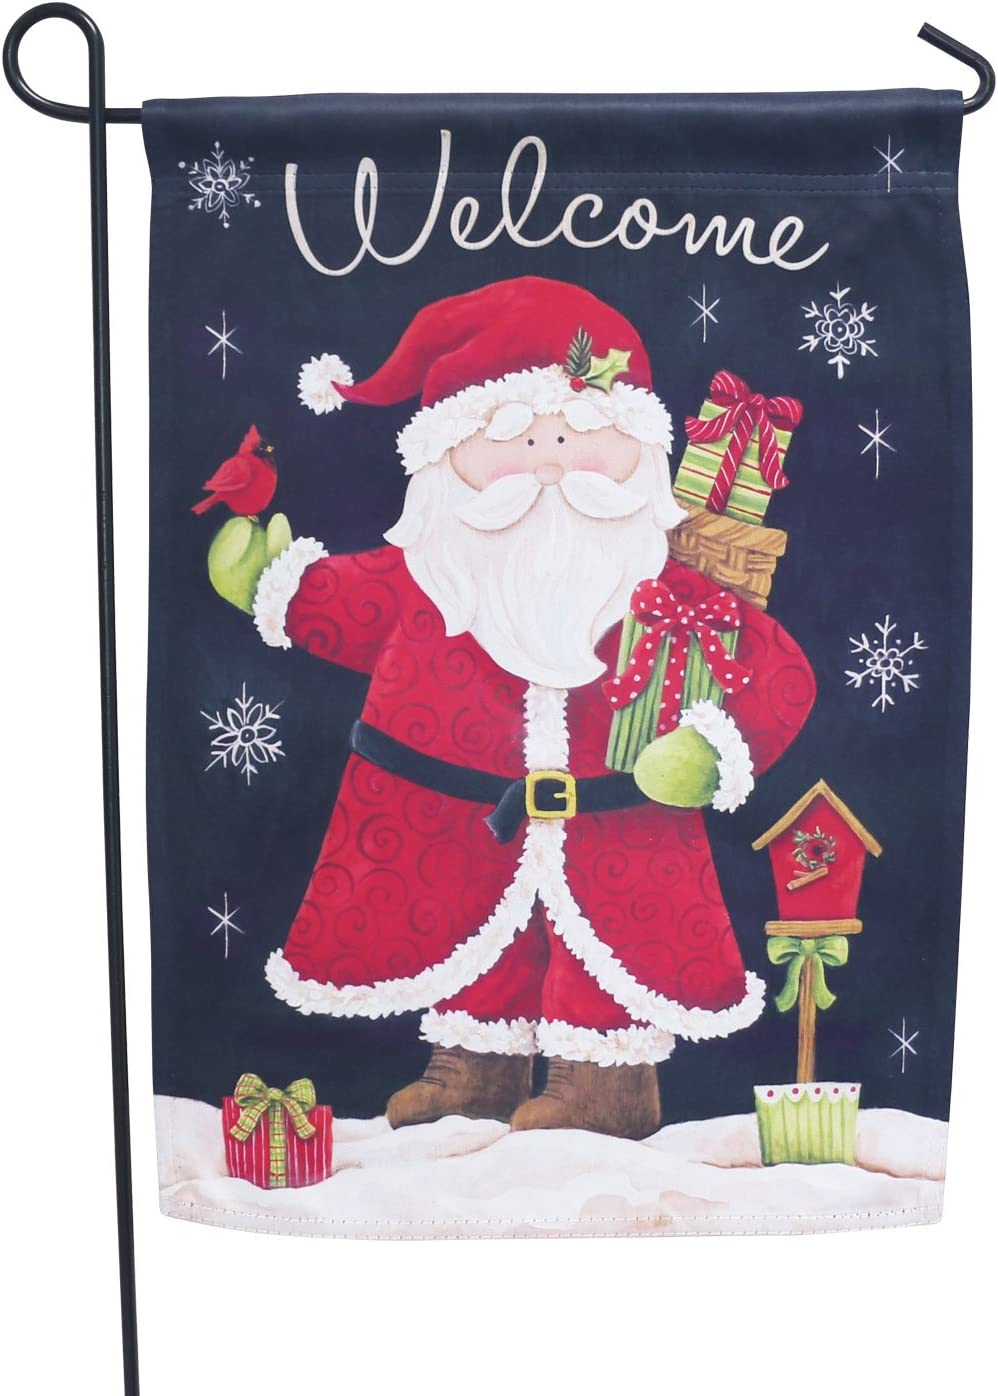 LAYOER Home Christmas Garden Flag 13 x 18 Inch House Double Sided Welcome Santa Claus 12 x 18 Inch